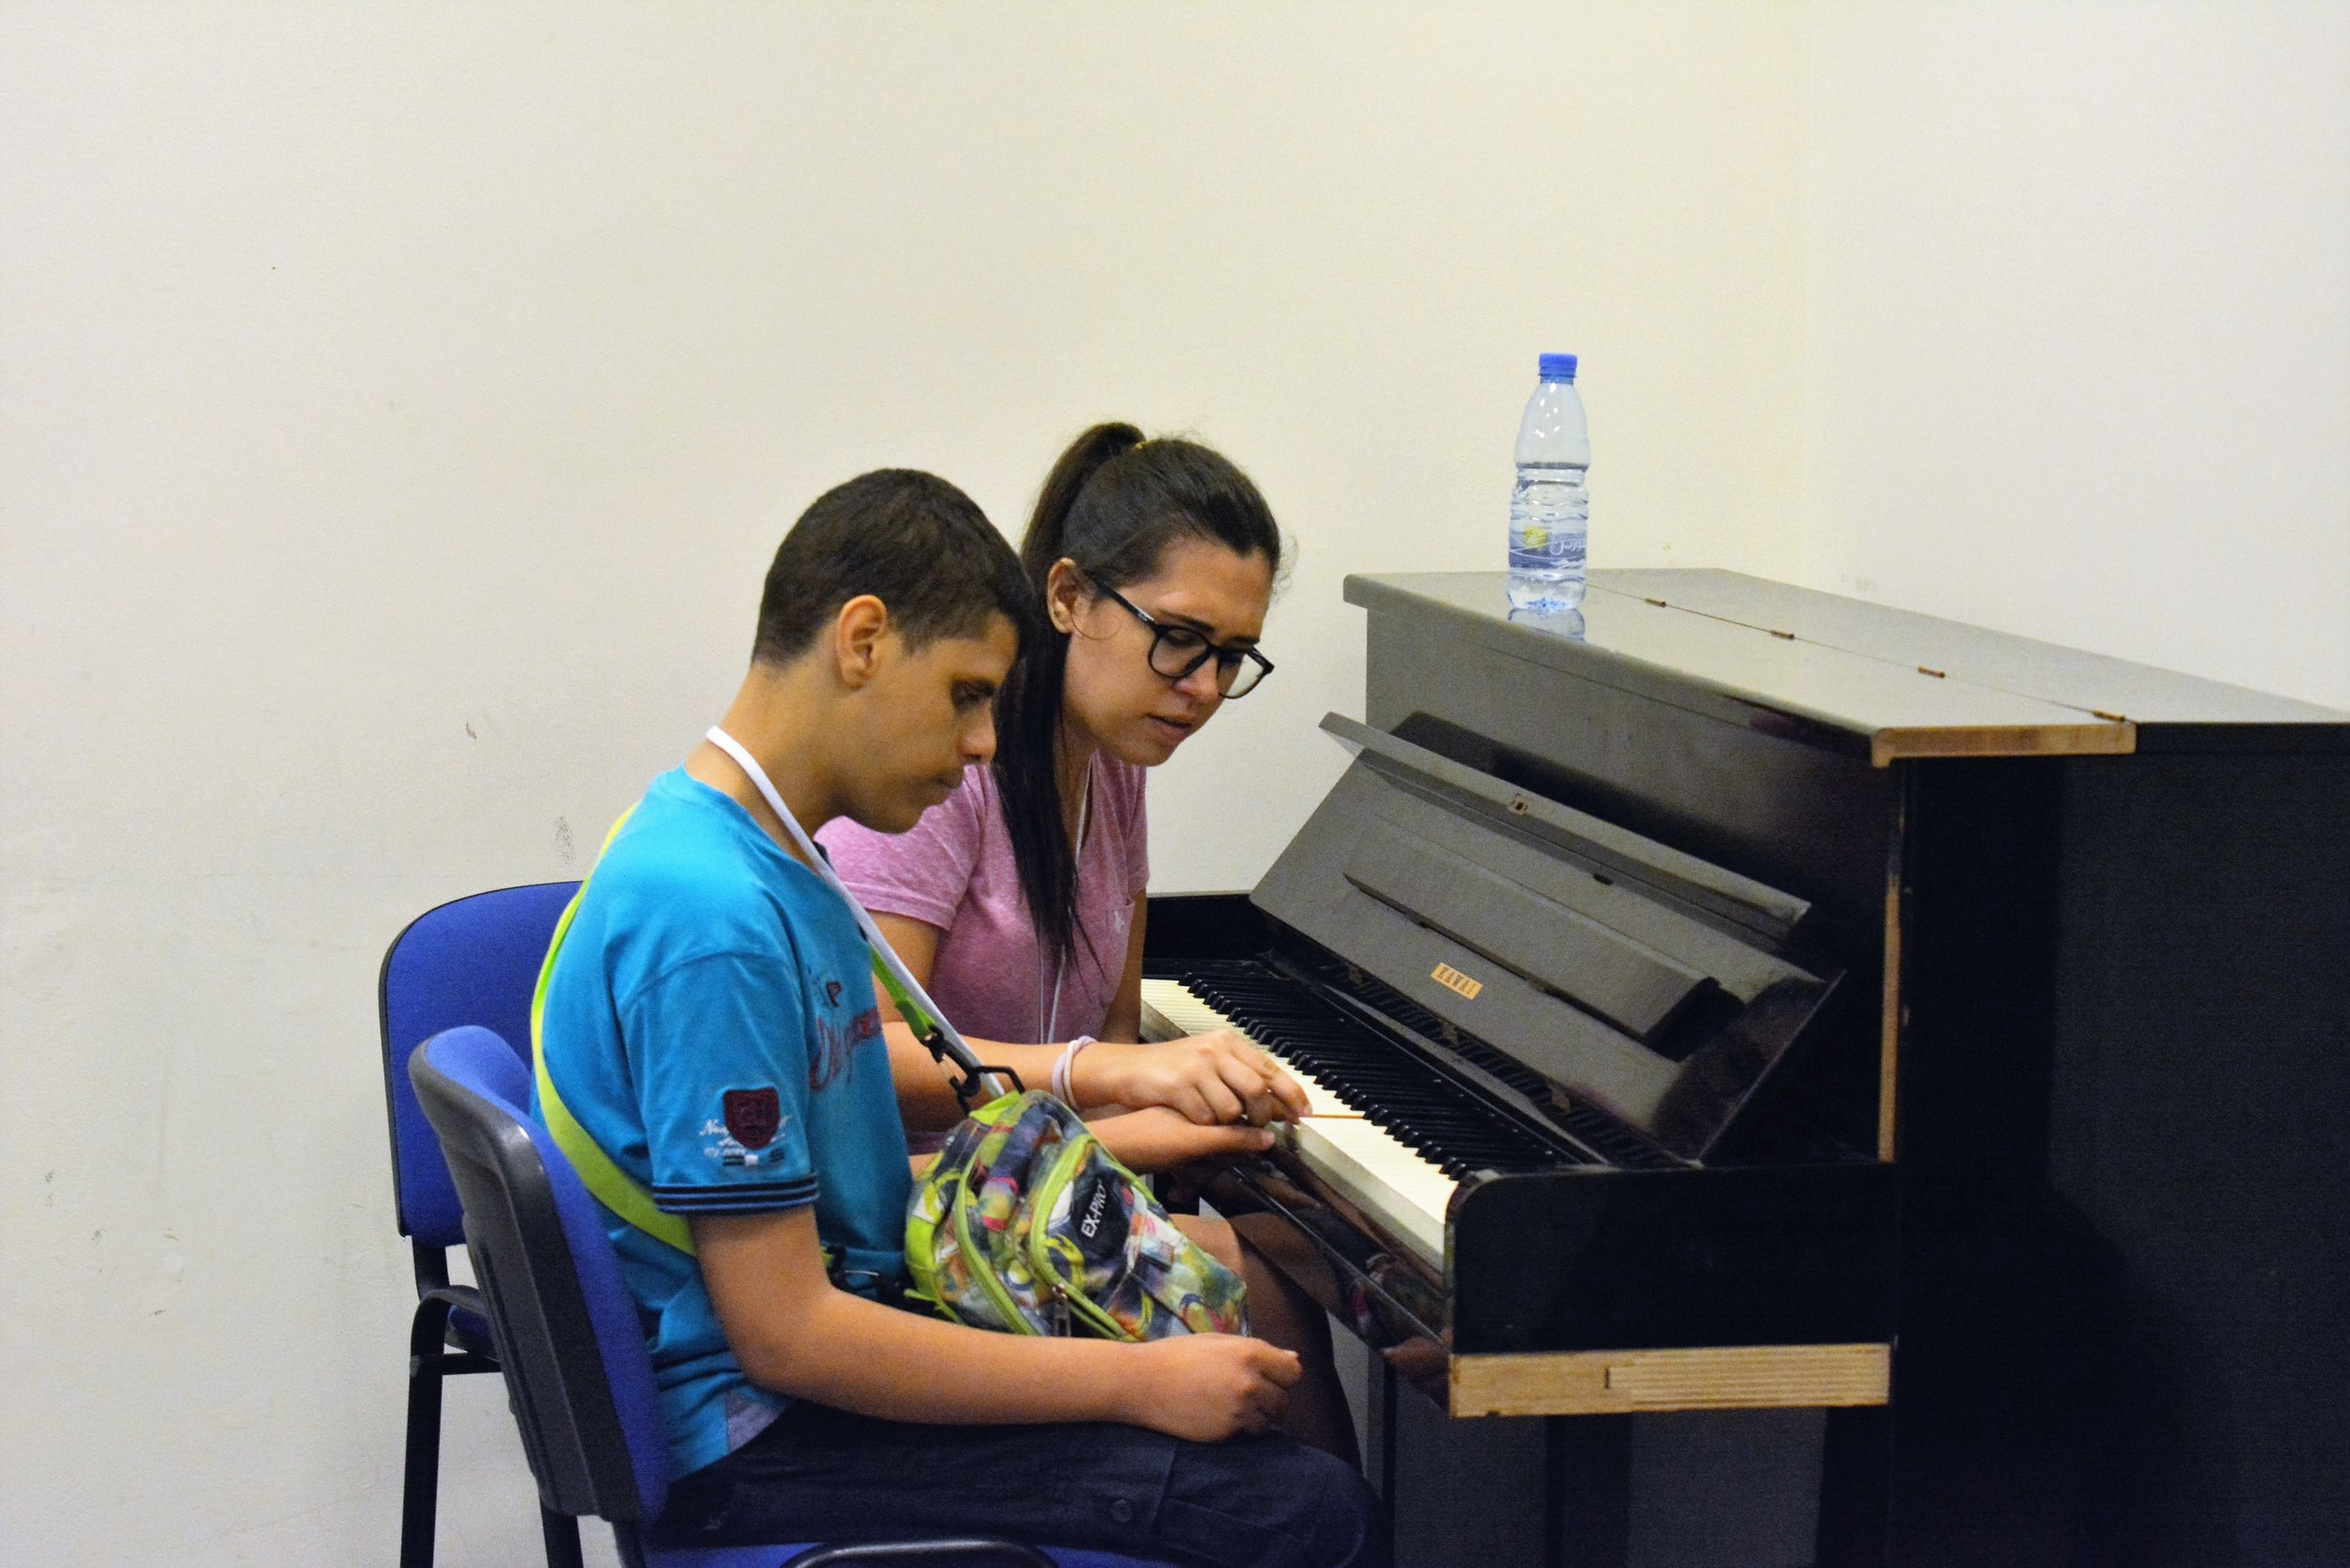 In the picture: a music teacher sits to the left of a participant with visual impairment at a piano and guides his hands on the keys.